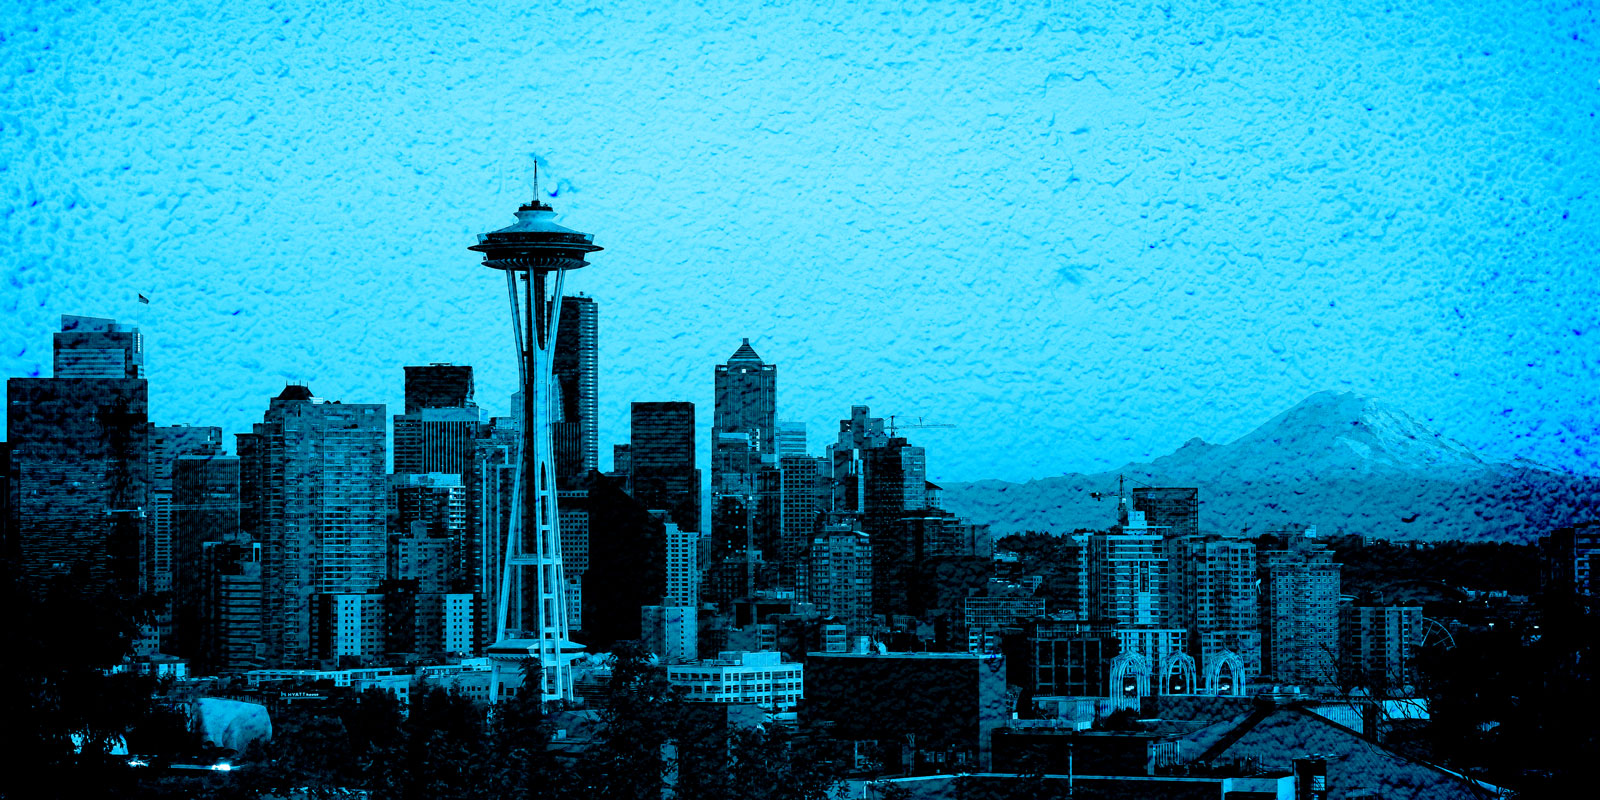 Dying, thriving – we're rooting for Seattle